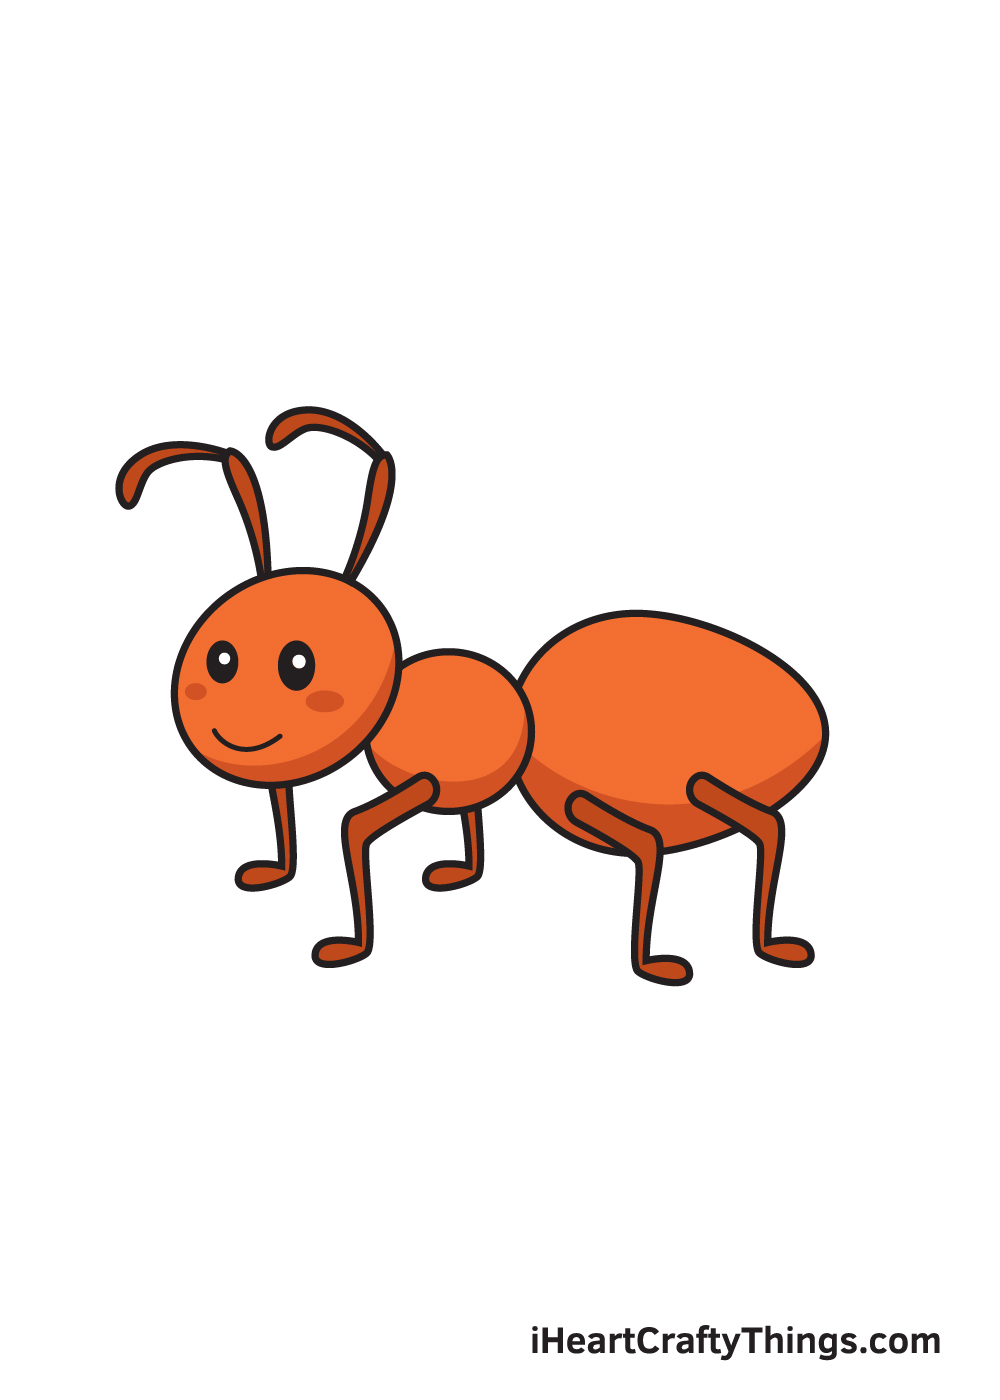 ant drawing 9 steps